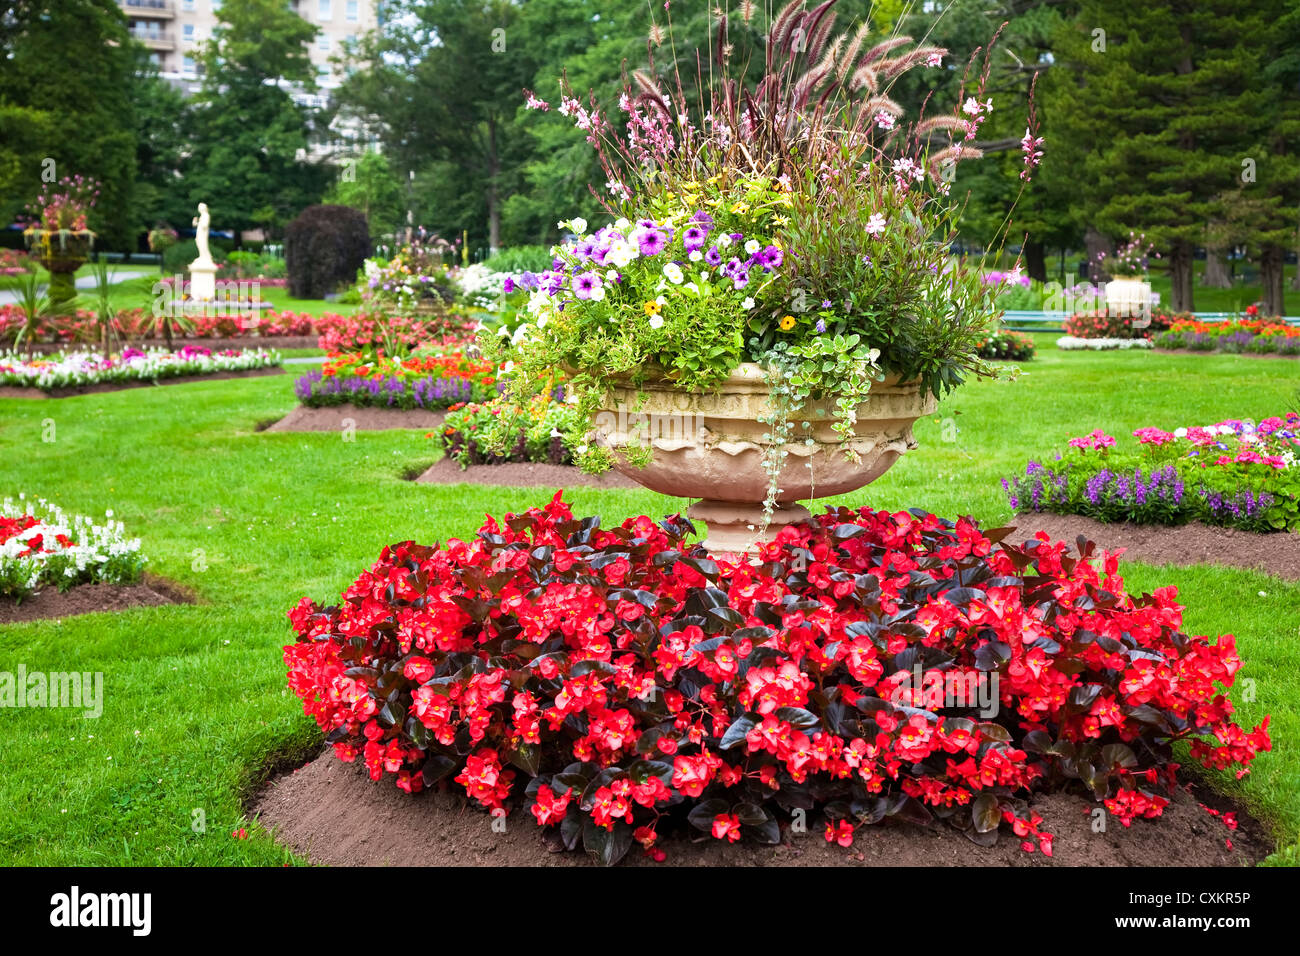 Ornate Large Cement Planters Filled With Annual Flowers In The